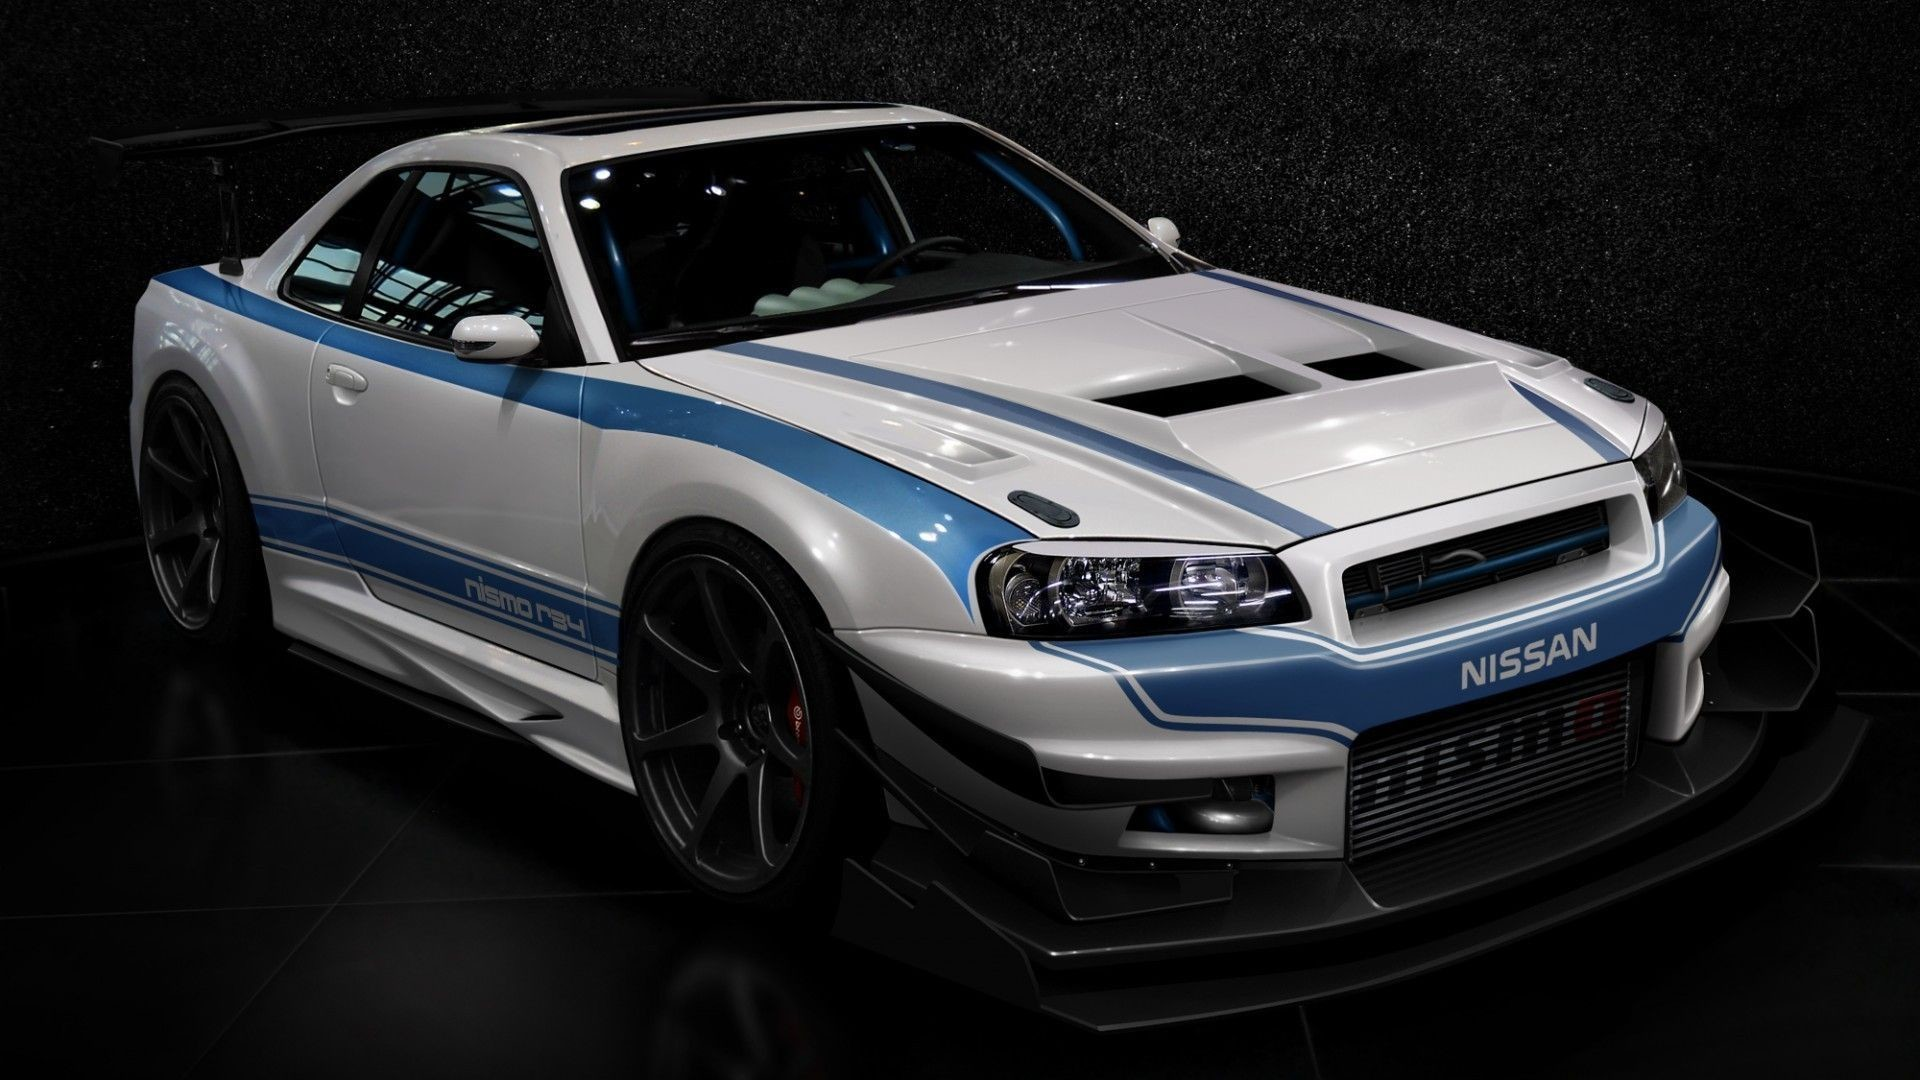 1920x1080 Cars design tuning tuned nissan skyline r34 gt-r wallpaper .